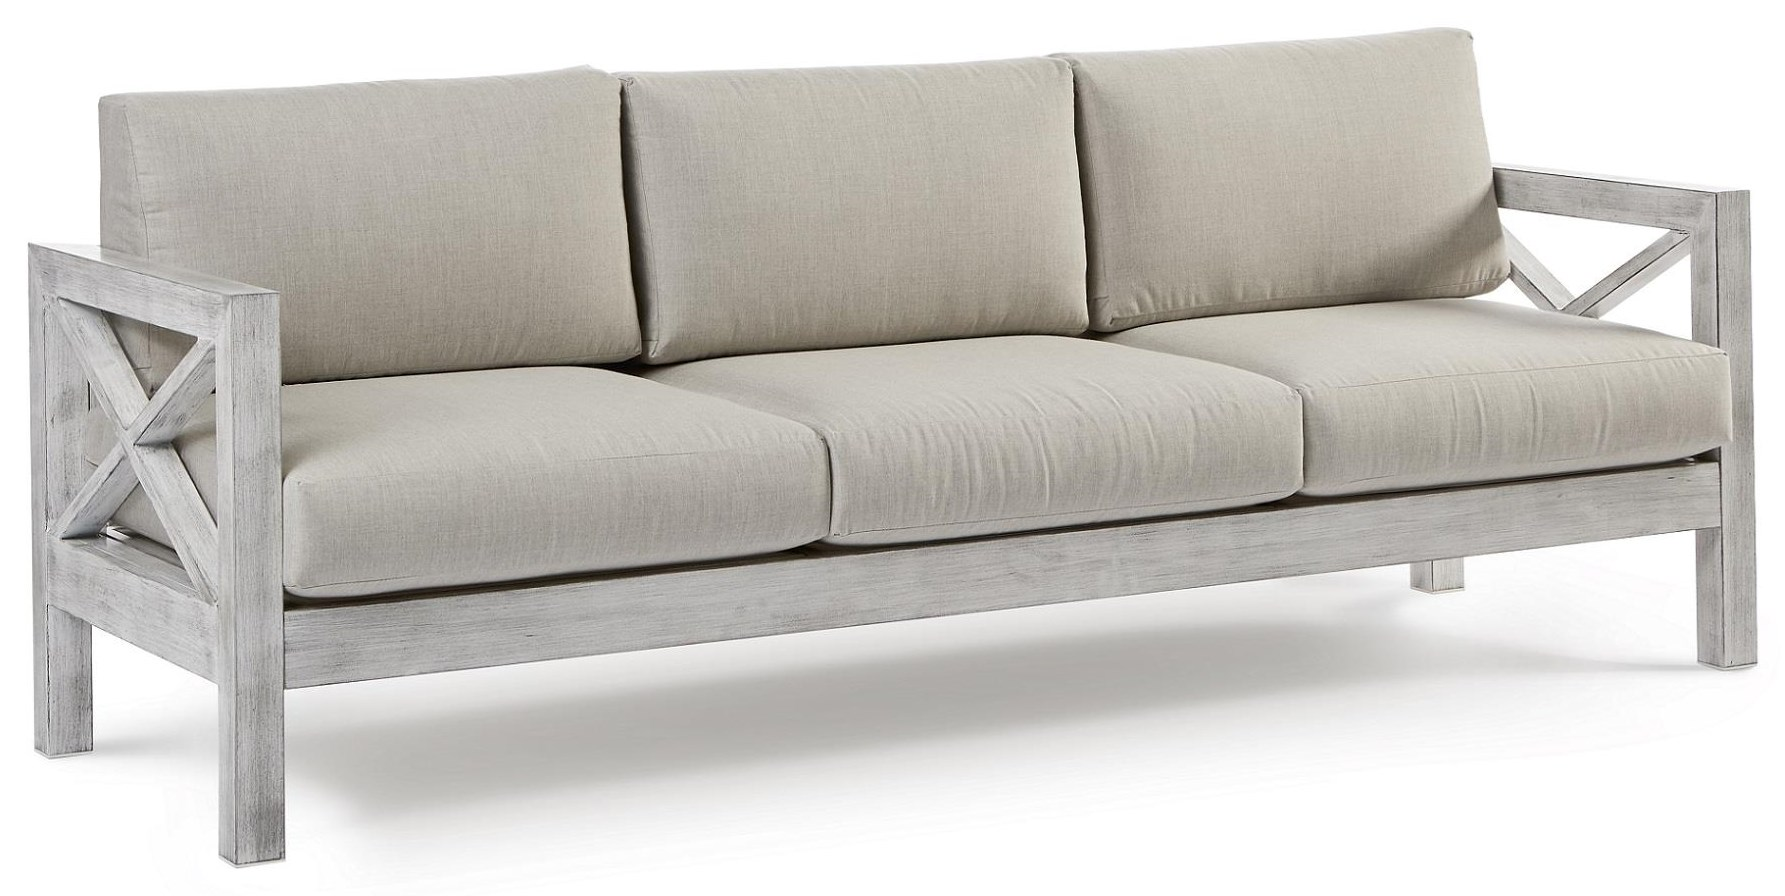 Sofa with Luxterior Cushions